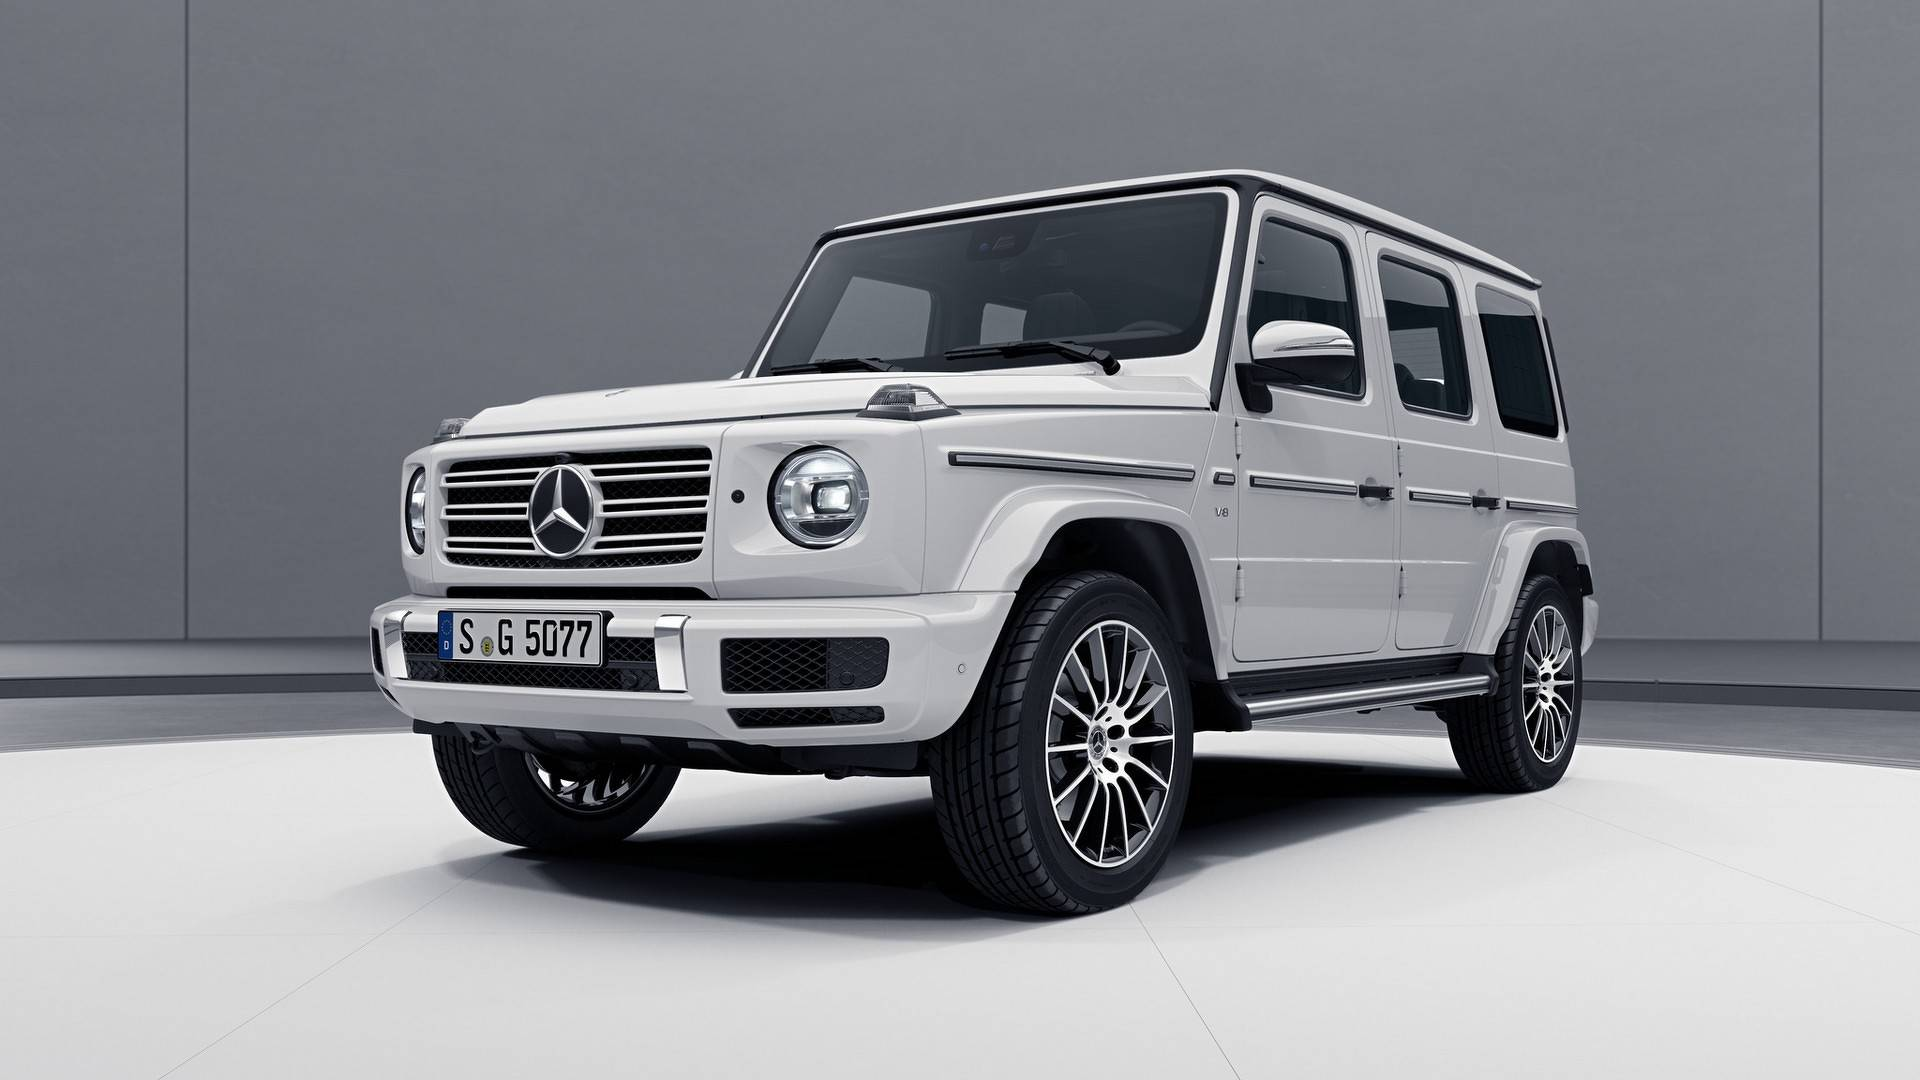 Mercedes Classe G ecco le serie speciali AMG Line e Night Package